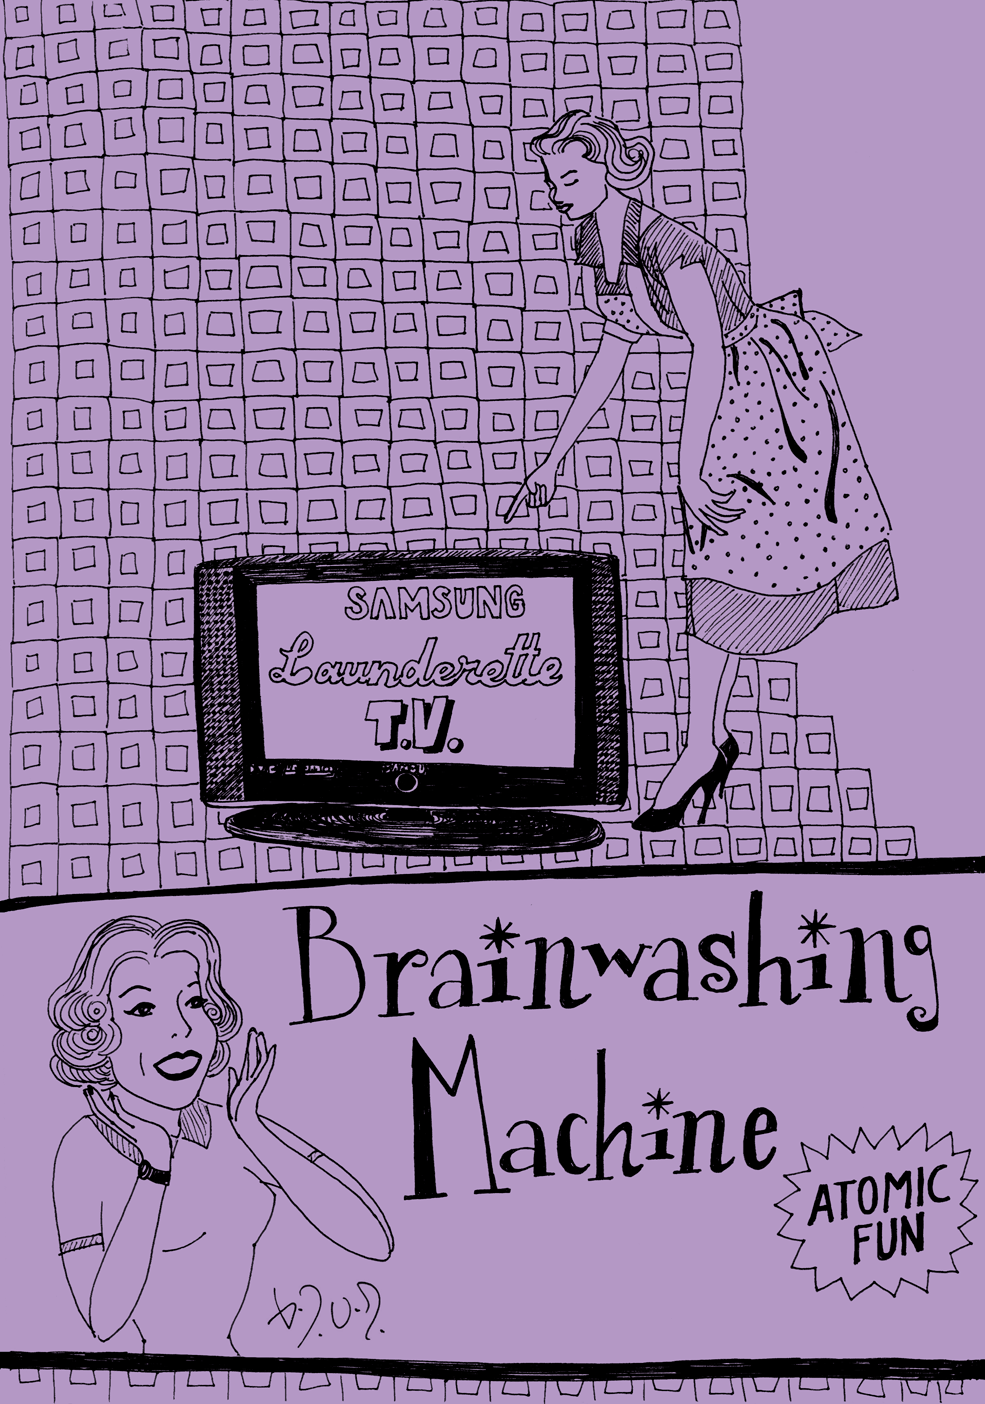 brainwashing_machine.png